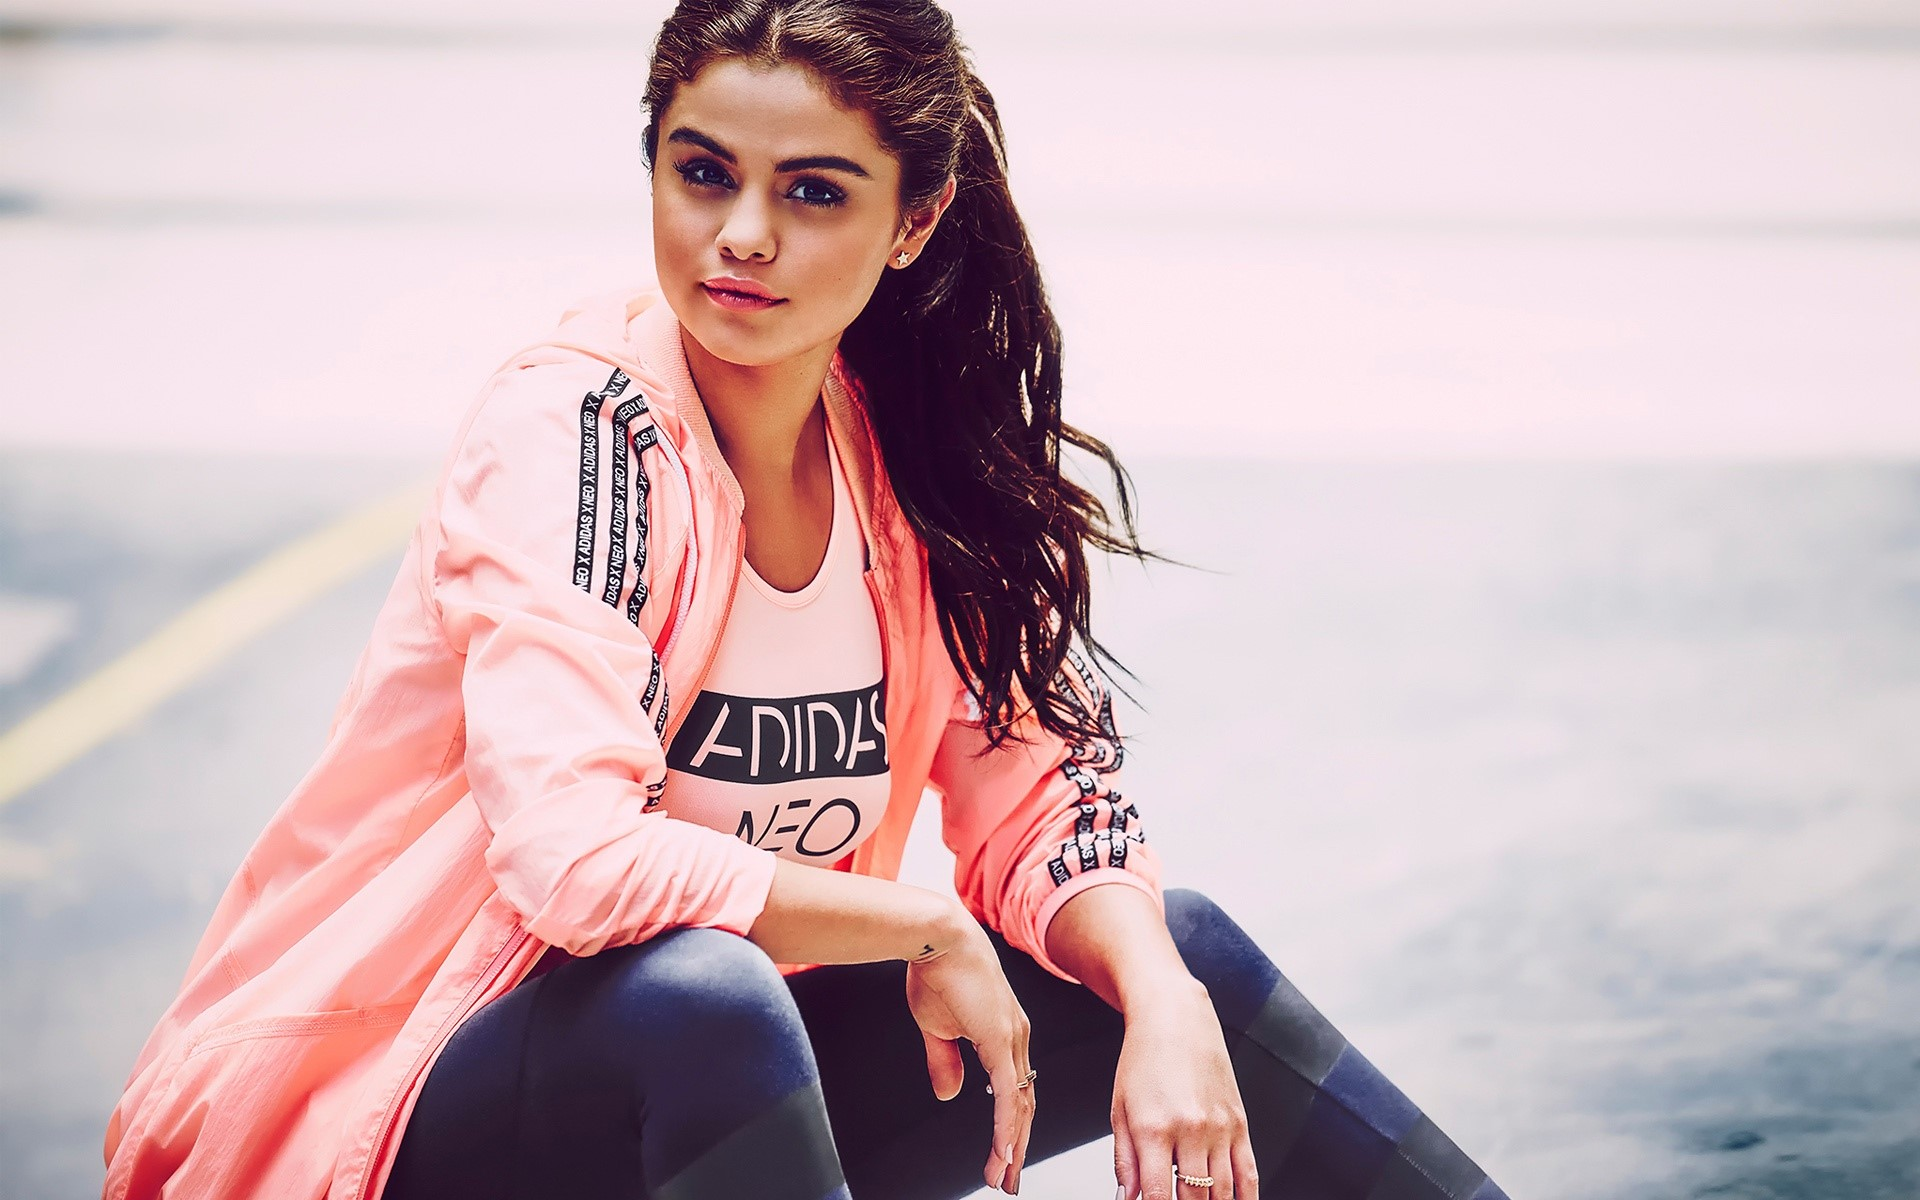 Wallpaper Selena Gomez with sports clothes